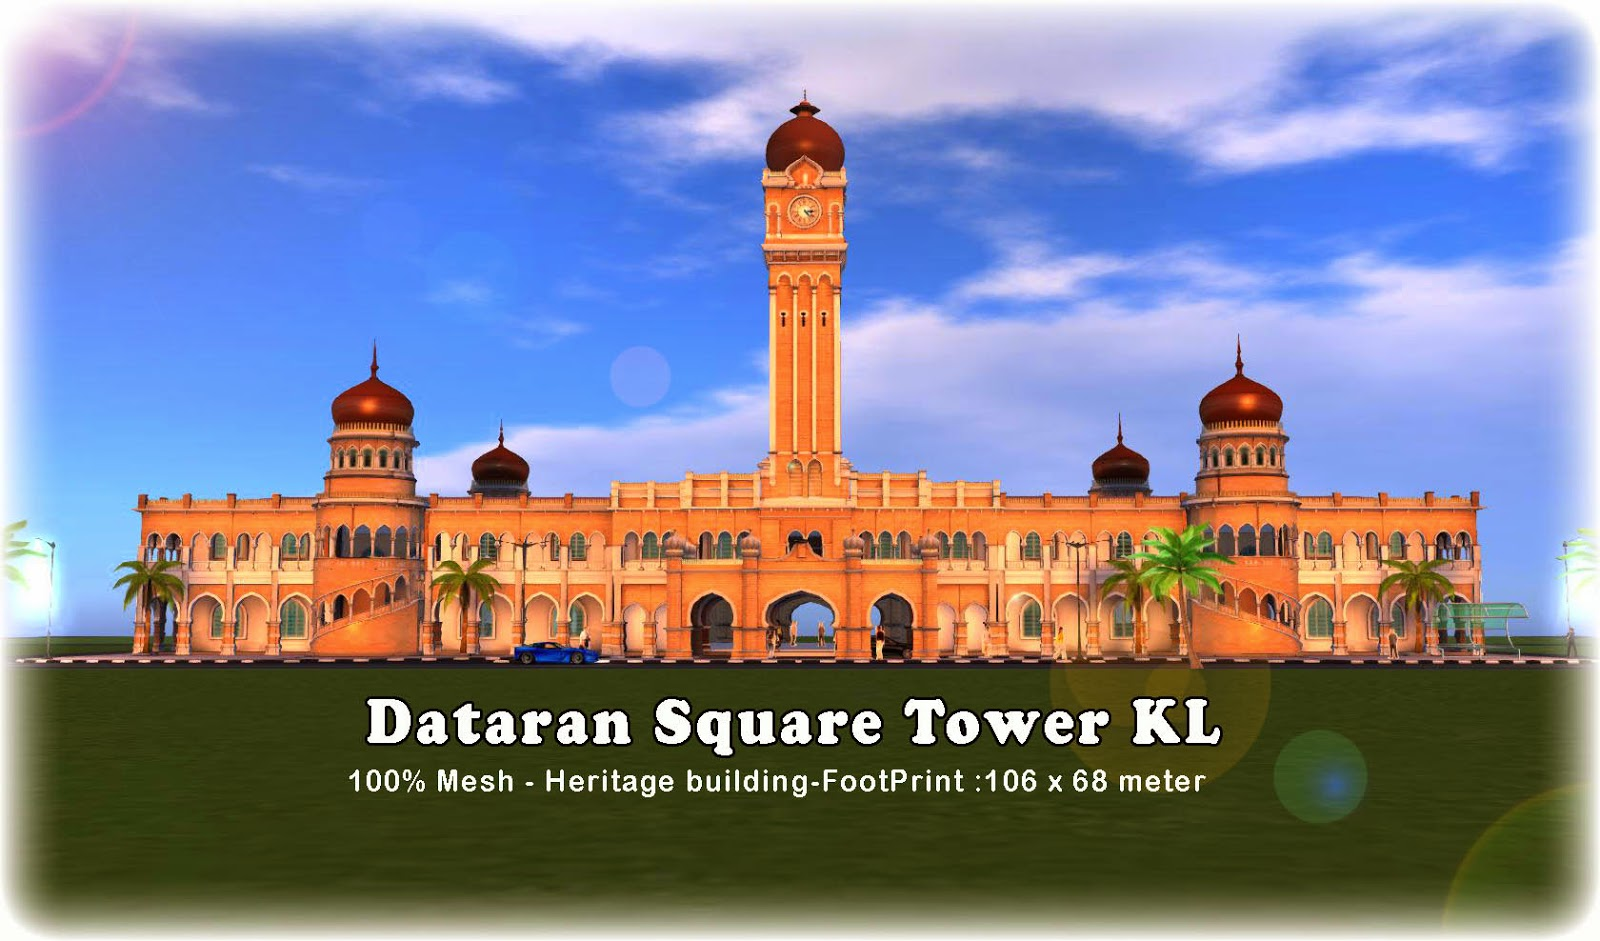 http://monthly-new-item.blogspot.com/2013/11/dataran-square-tower-kl.html